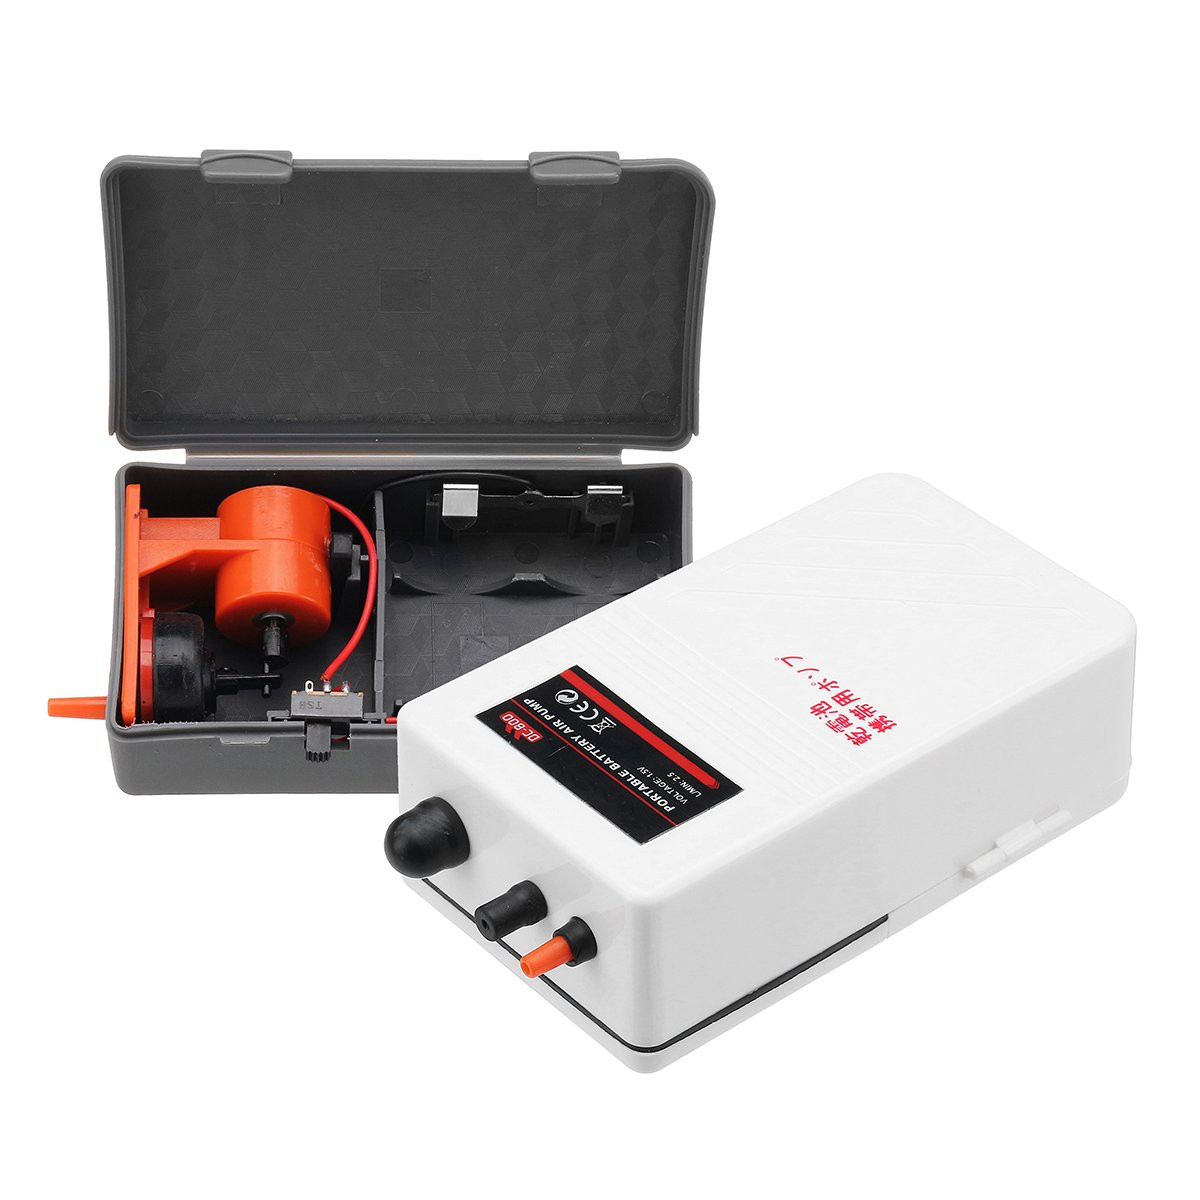 2-5W Aquarium Outage Emergency Battery Operated Air Pump Fishing Aerator Oxygen